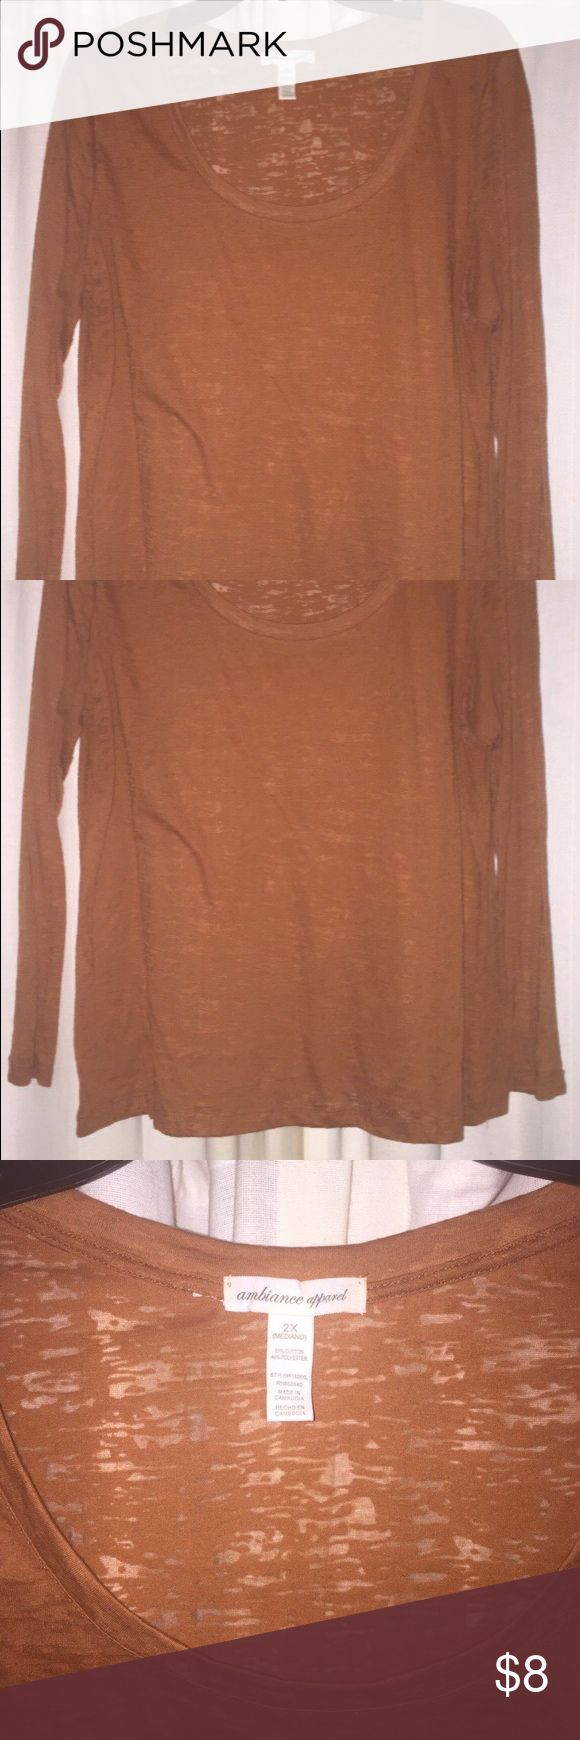 Long sleeve scoop neck burnt orange t-shirt Plus size burnt orange scoop neck long sleeve t-shirt. See through pattern makes it fun to wear over different color tanks or tight shirts, and layer underneath sweaters, cardigans or jackets. Very earthy burnt orange color. Form fitting shirt. Tops Tees - Long Sleeve